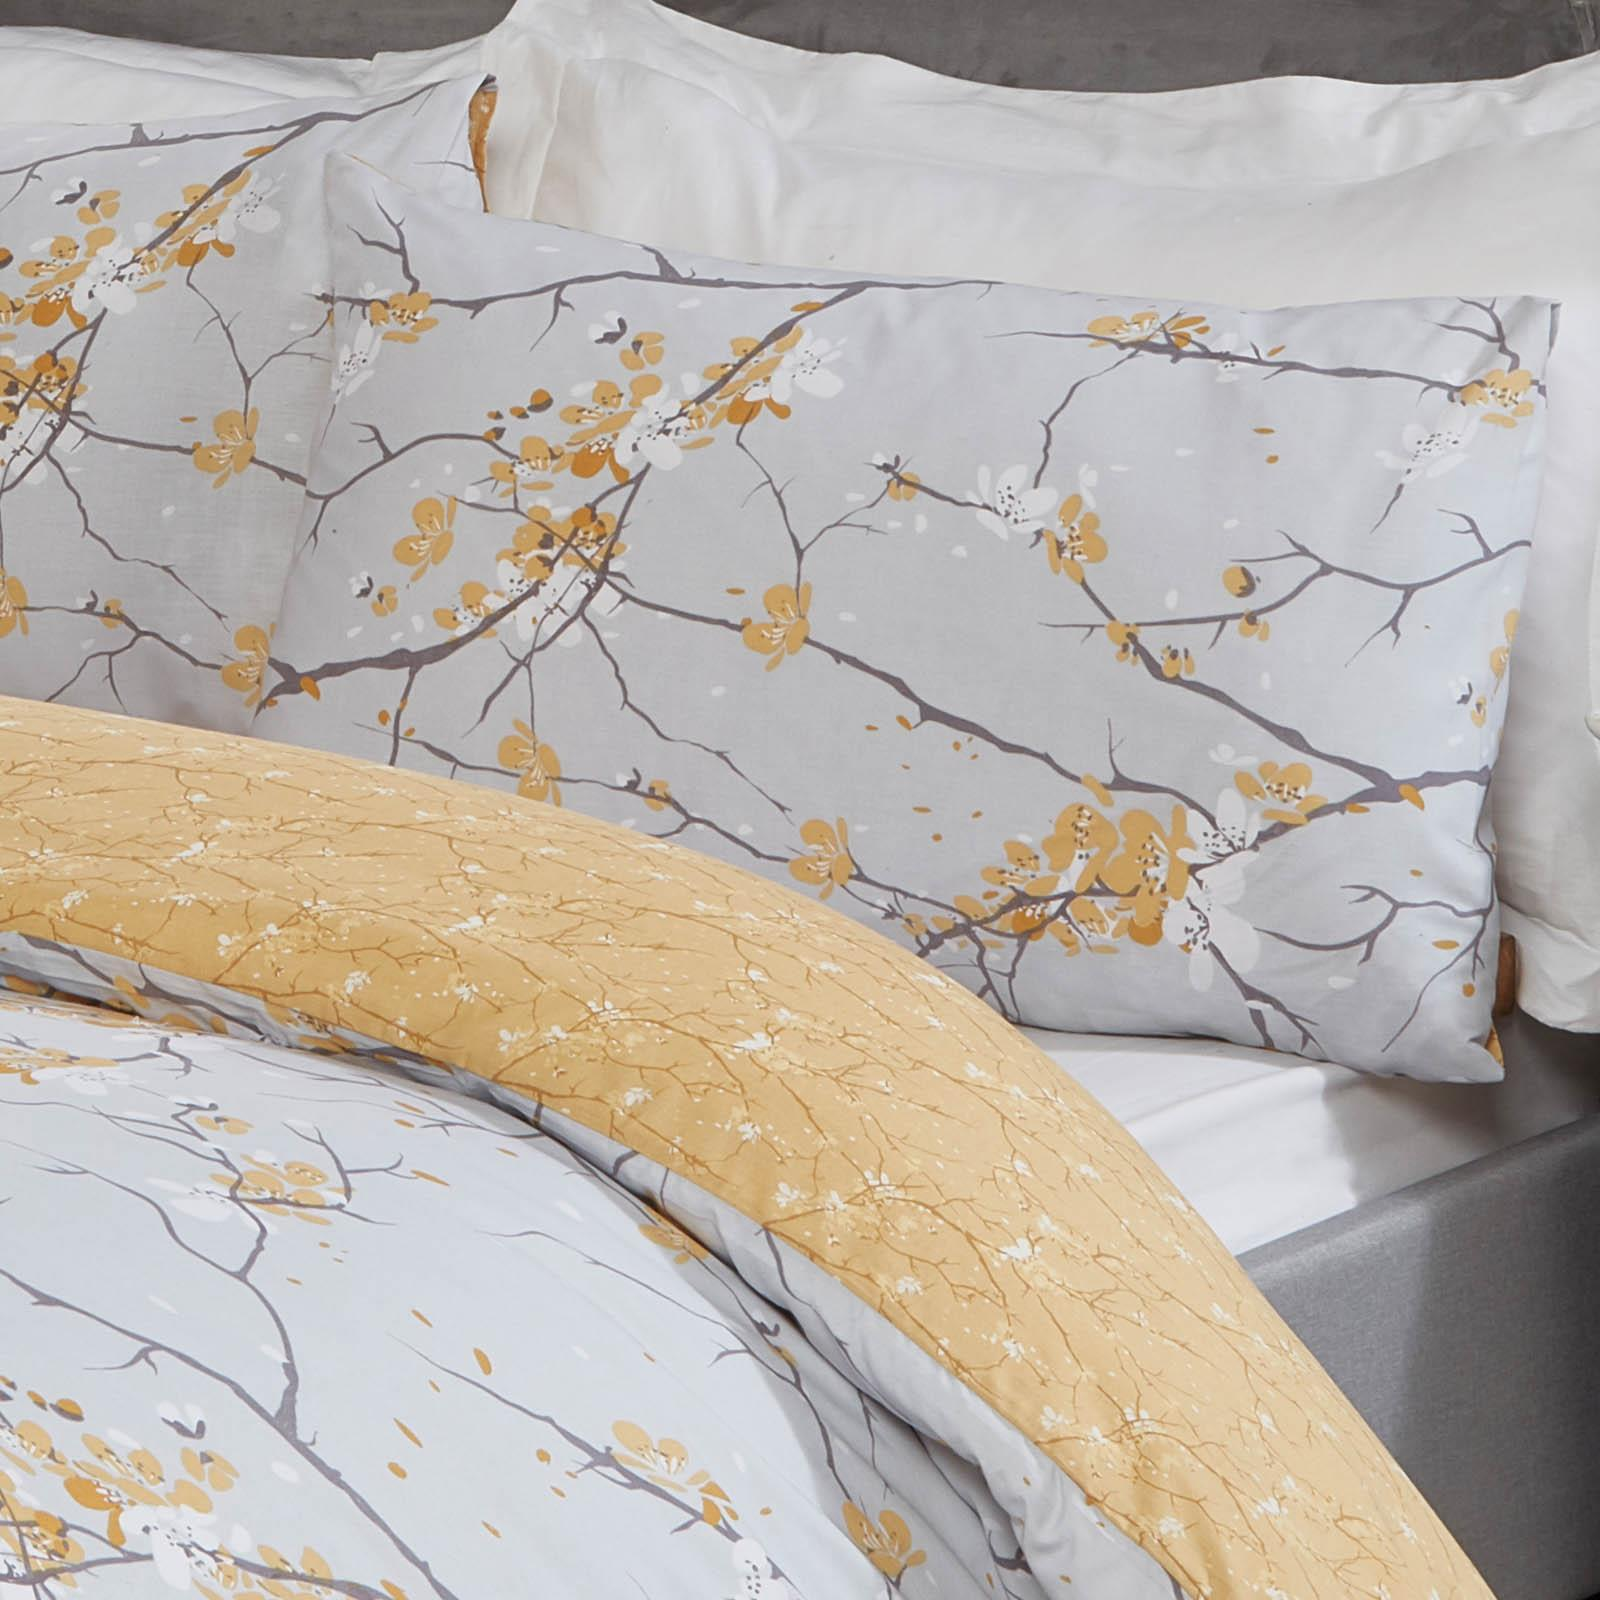 thumbnail 15 - Dreamscene Spring Blossoms Duvet Cover with Pillowcases Bedding Set Blush Ochre